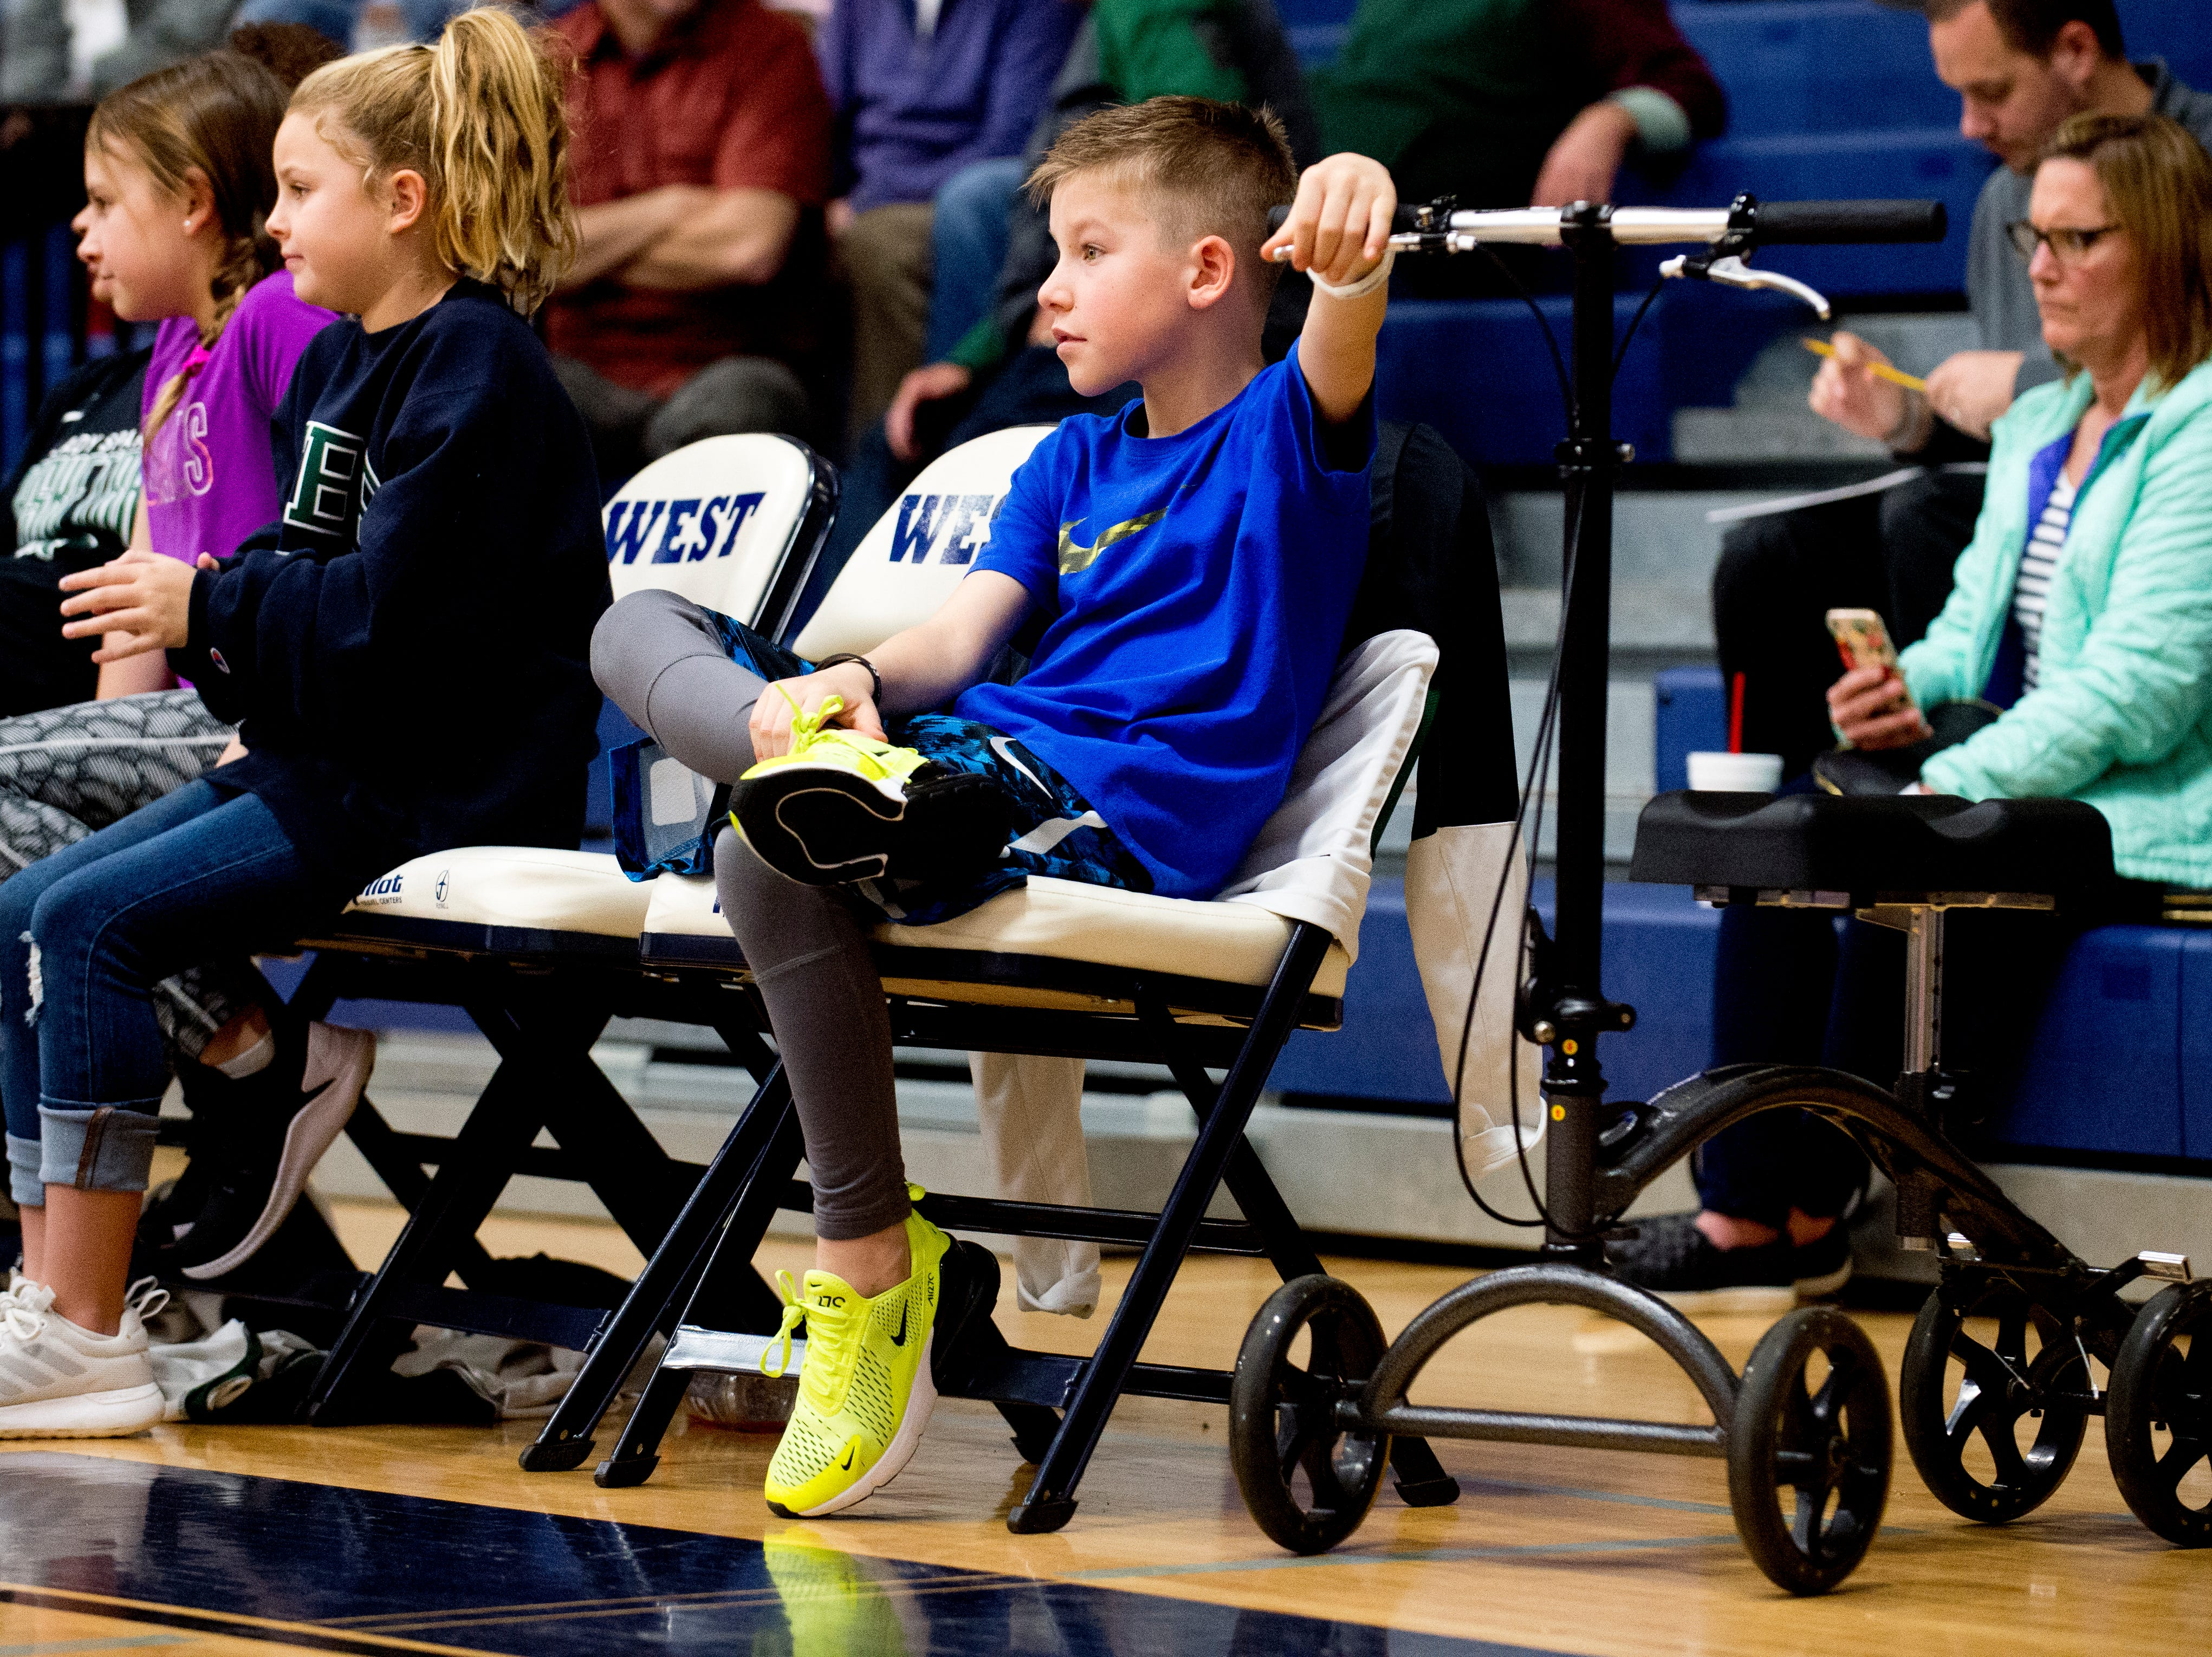 A boy watches the action from the bench during a game between West and Webb at West High School in Knoxville, Tennessee on Friday, January 4, 2019.